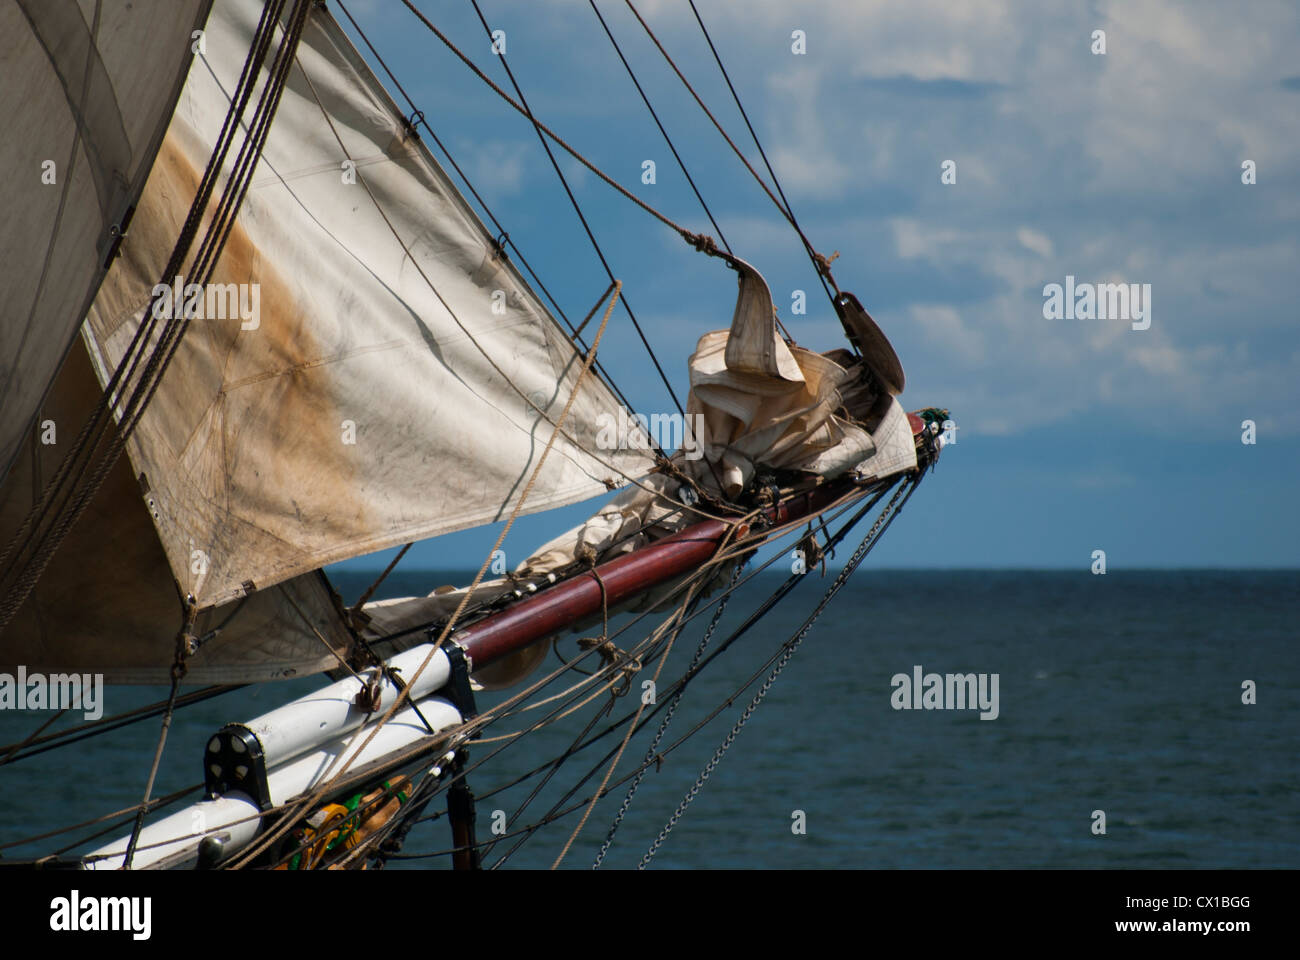 Tall Ship, the Sailing Vessel and Cargo Ship, Brigadine Tres Hombres, Two Masted and Square Rigged Schooner - Stock Image